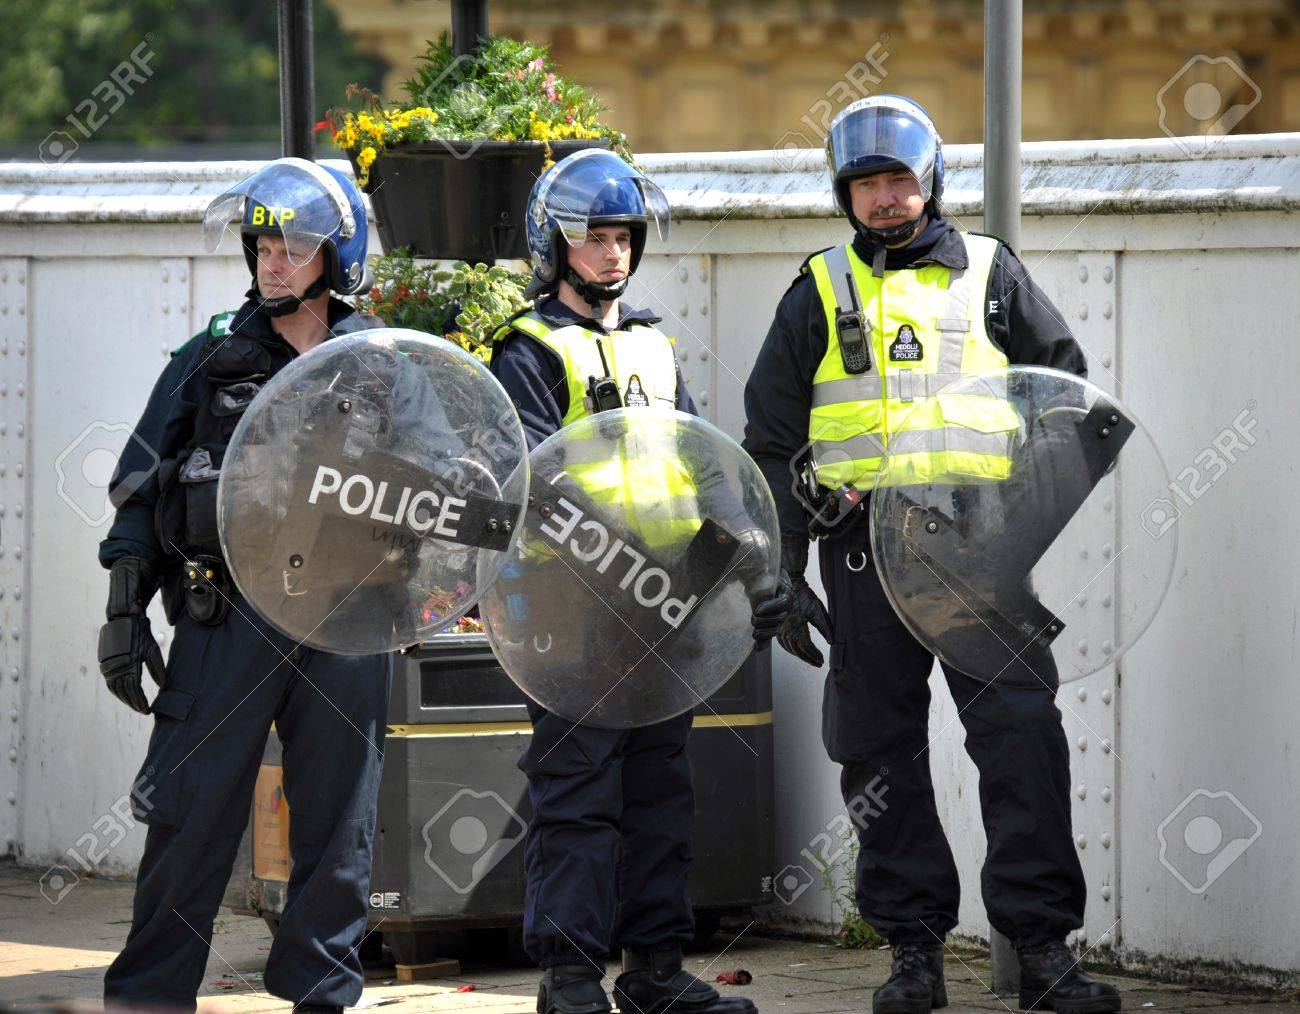 Riot police preparing for trouble at an EDL Demonstration Stock Photo - 11542653